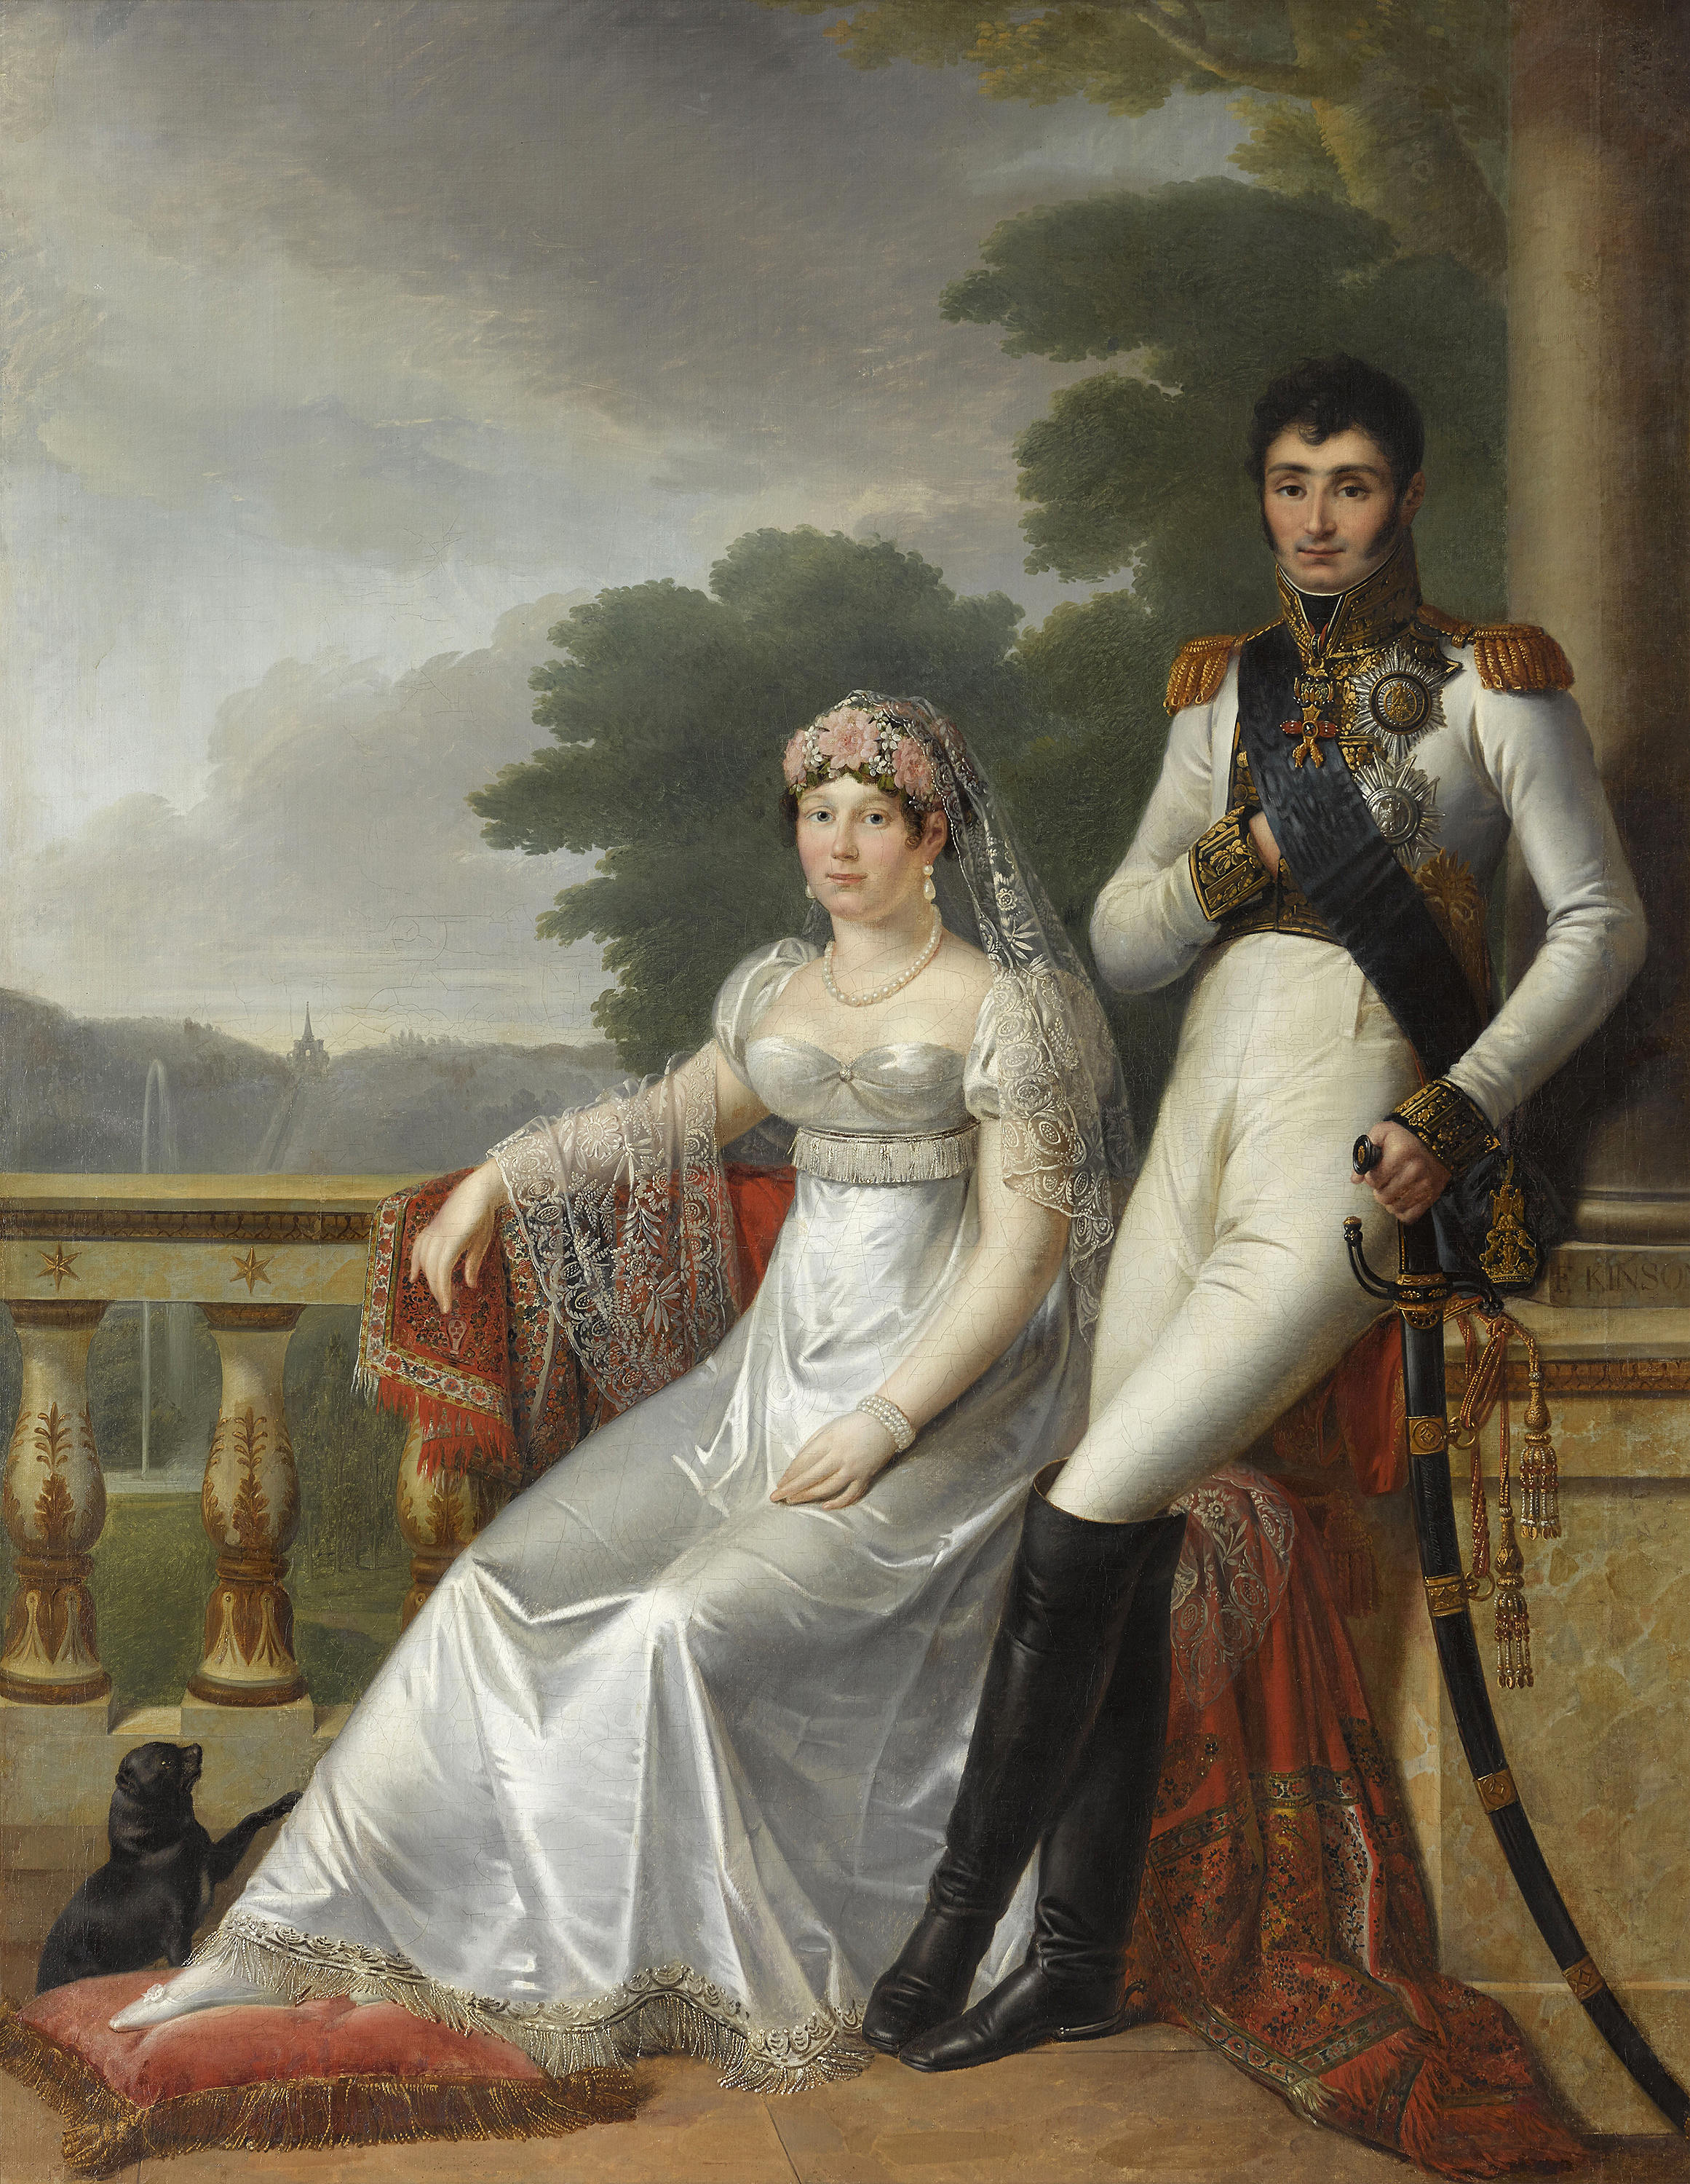 Portrait of Catharina of Württemberg (1783-1835), Queen consort of Westphalia (1807-1813) and Jérôme Bonaparte (1784-1860), King of Westphalia (1807-1813), Marshal of France from 1850 | Portraits of Kings